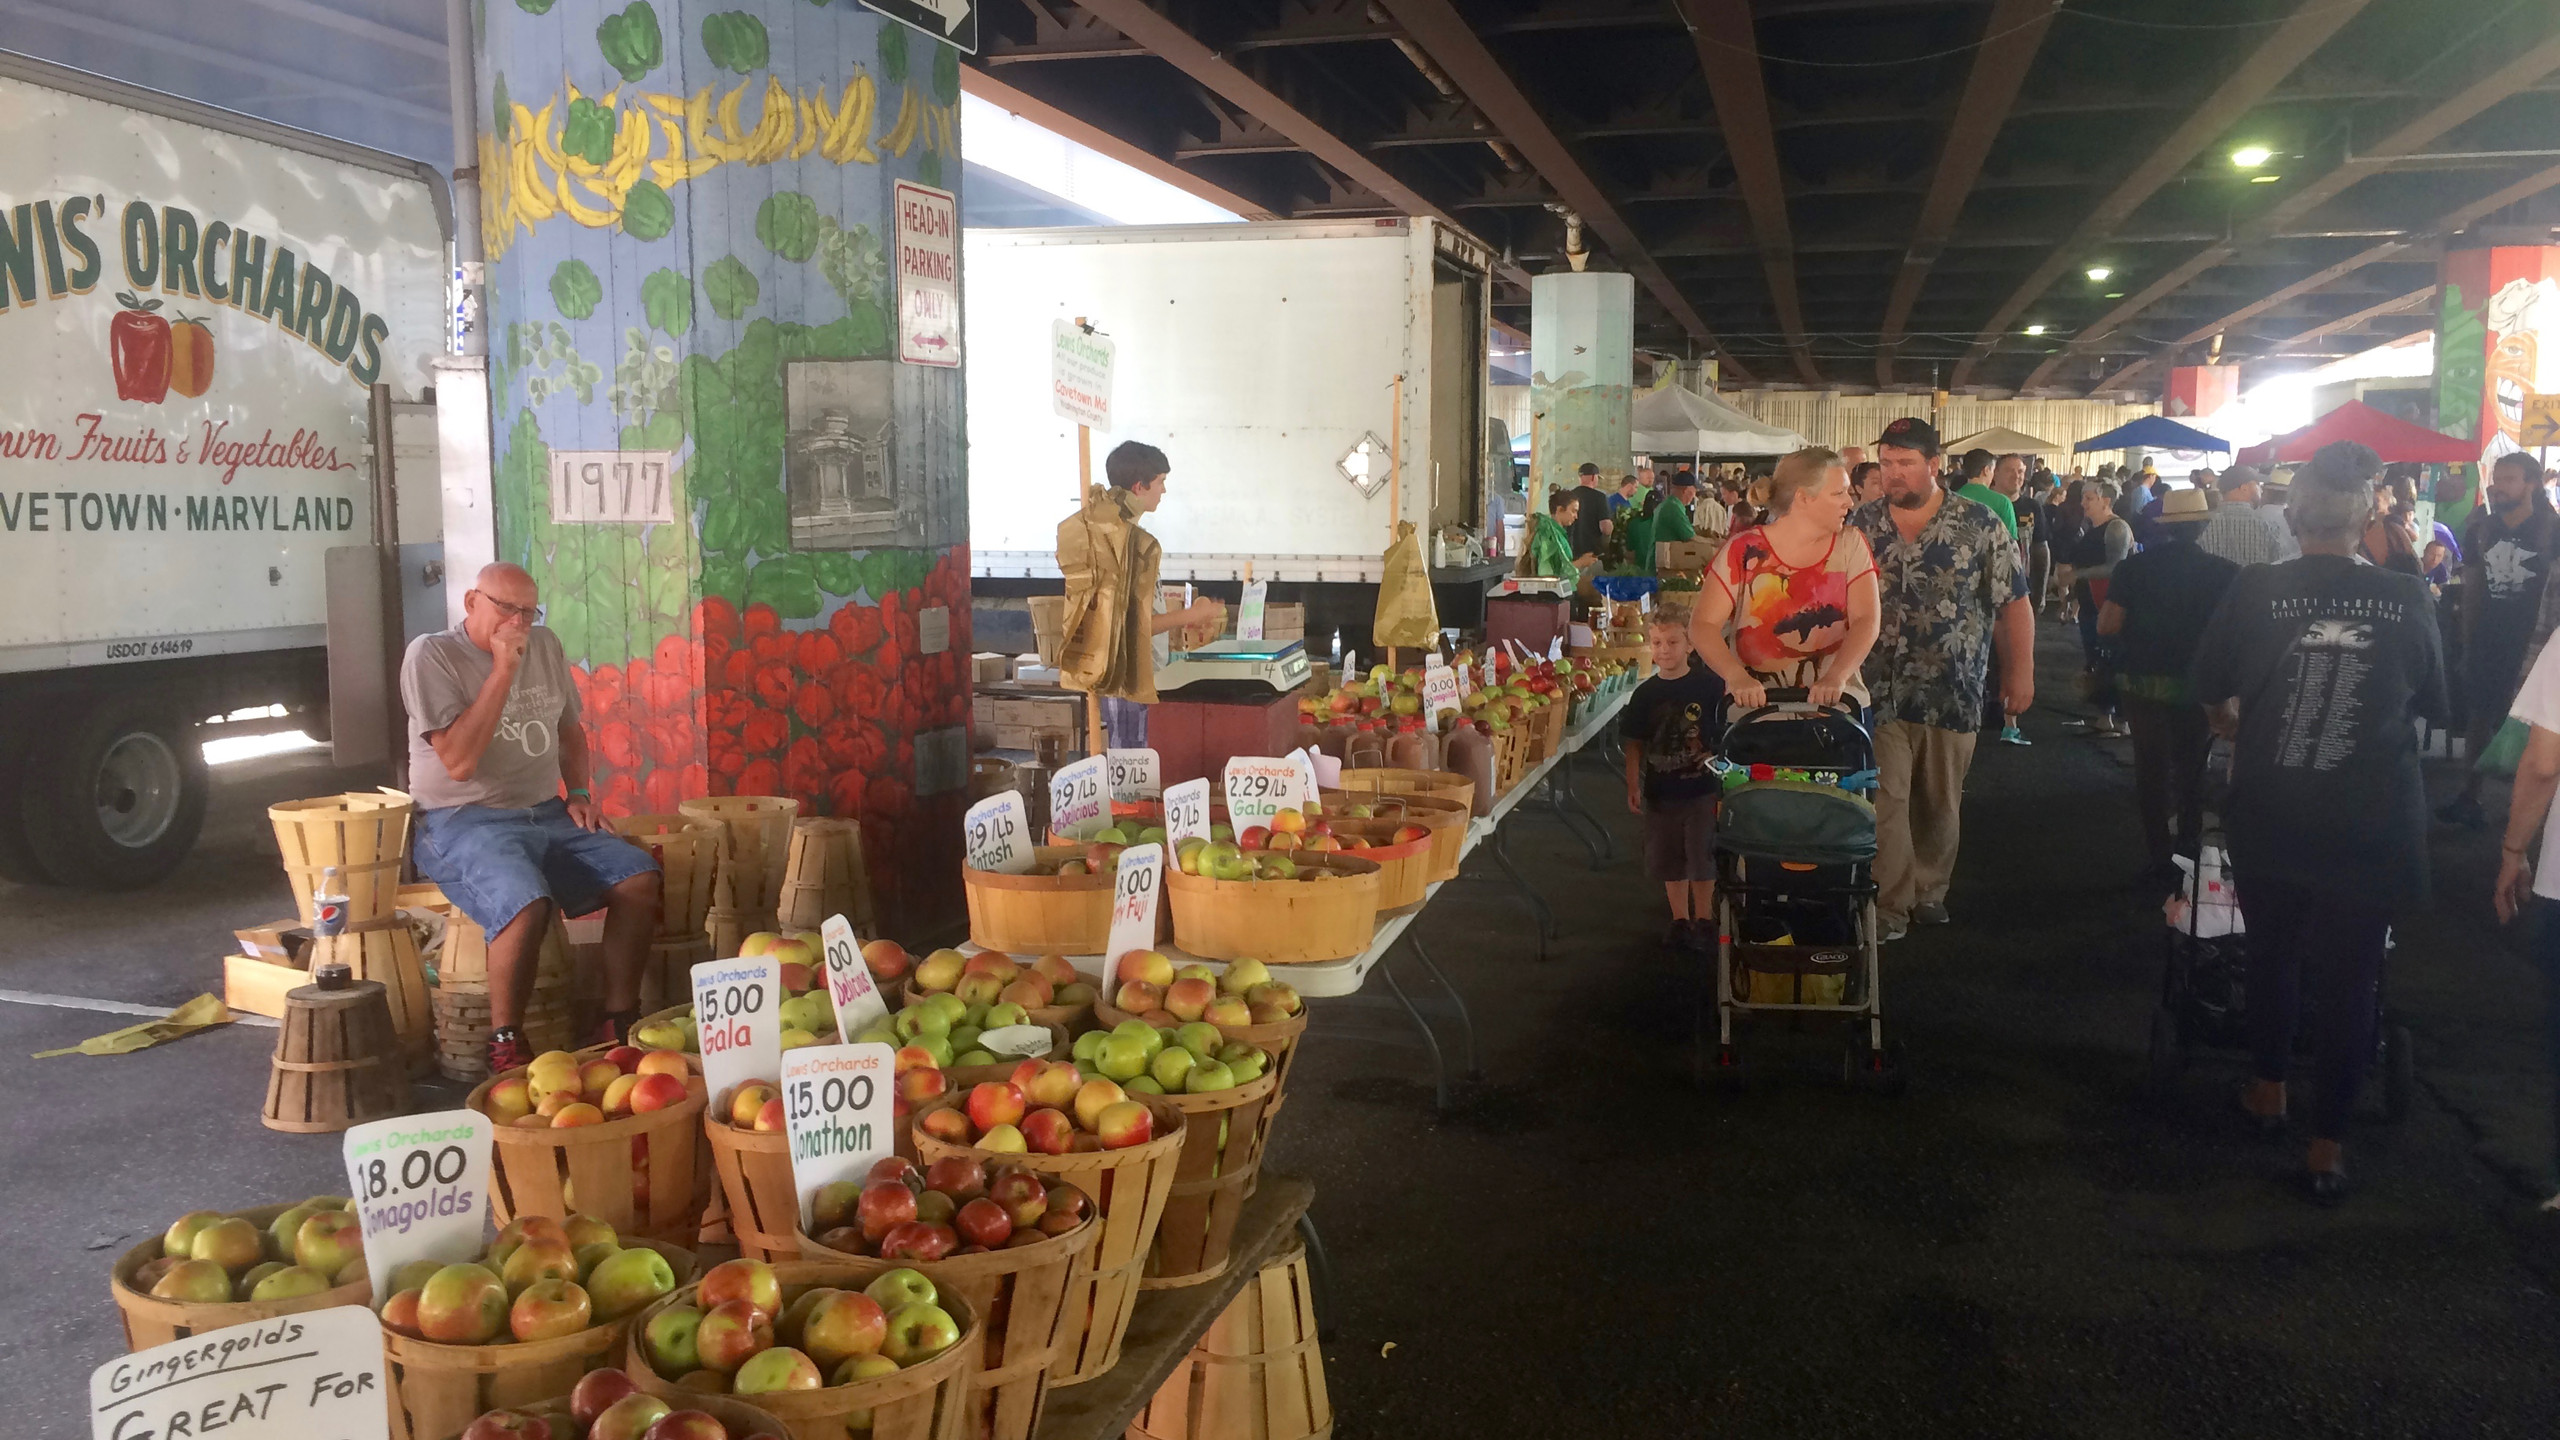 Apples and murals at the Farmers' Market